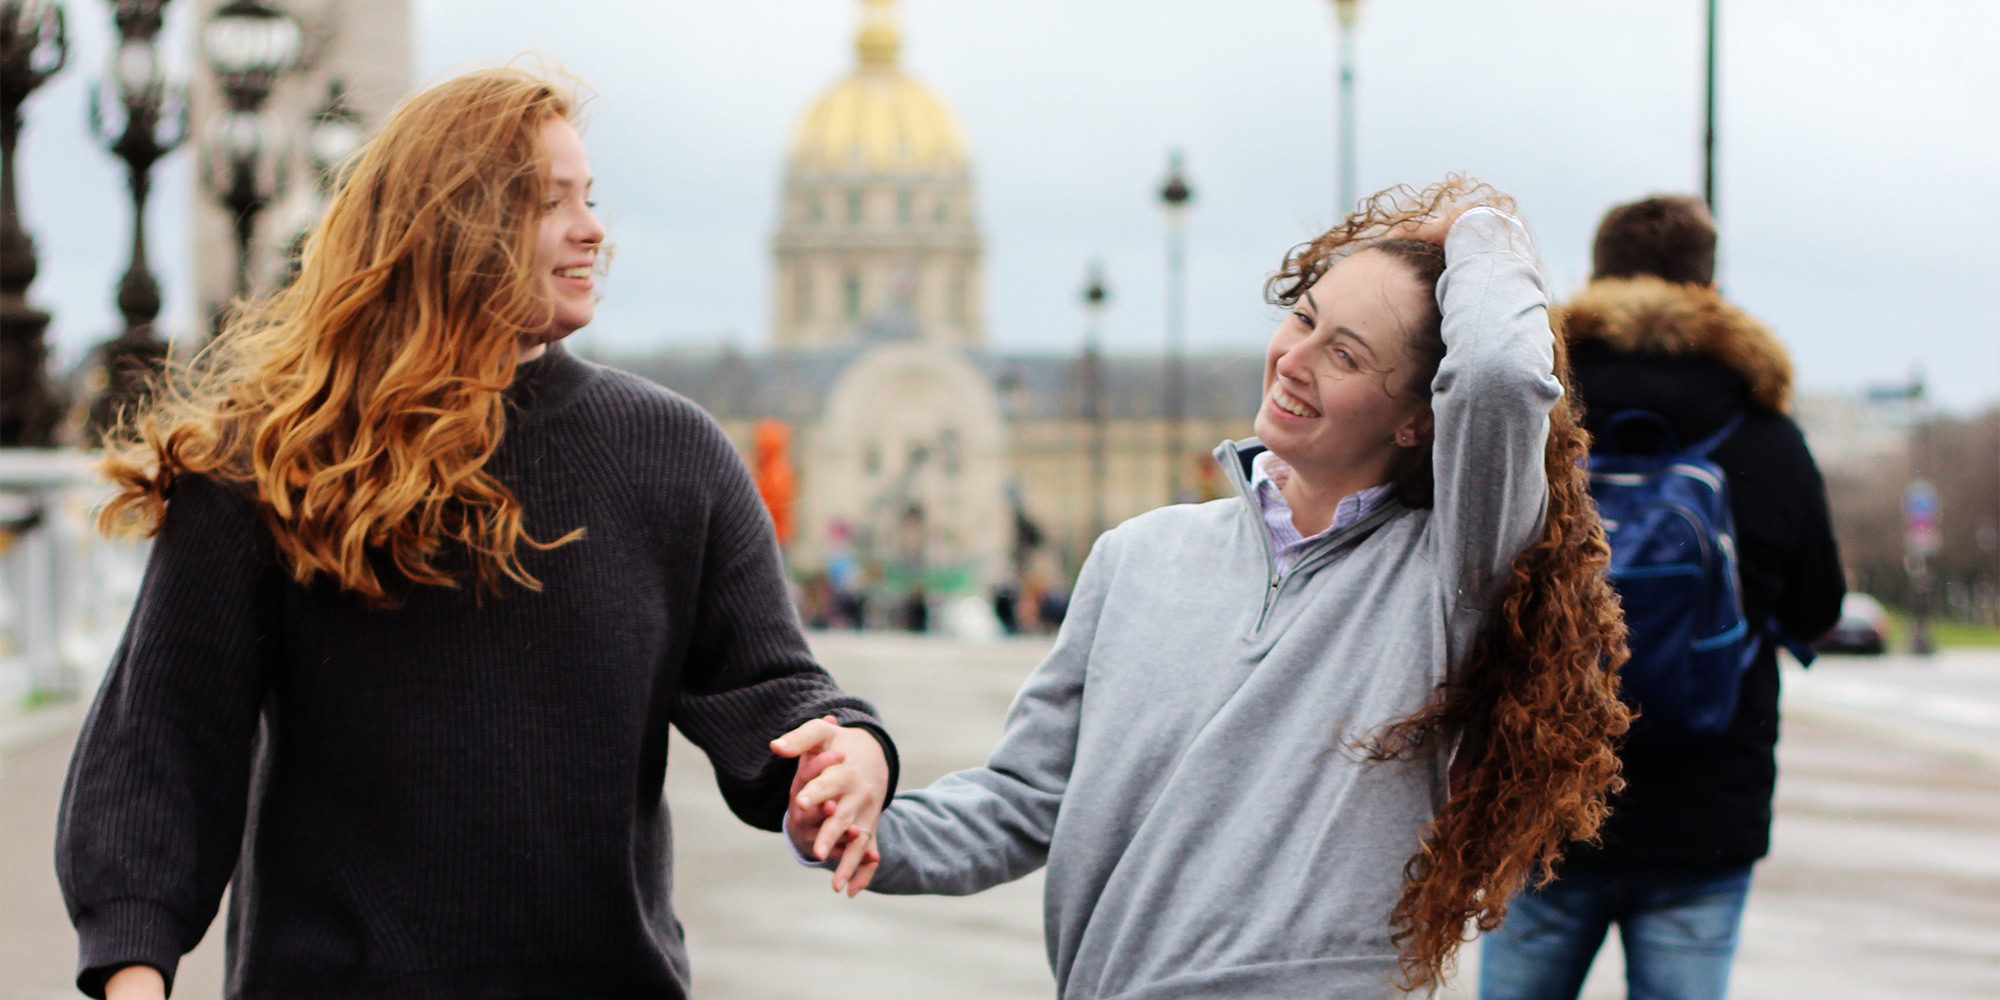 Two young white women with long red hair are holding hands in a public space. The woman on the right is running her hands through her hair and smiling bashfully while the woman on the left looks at her with amusement.